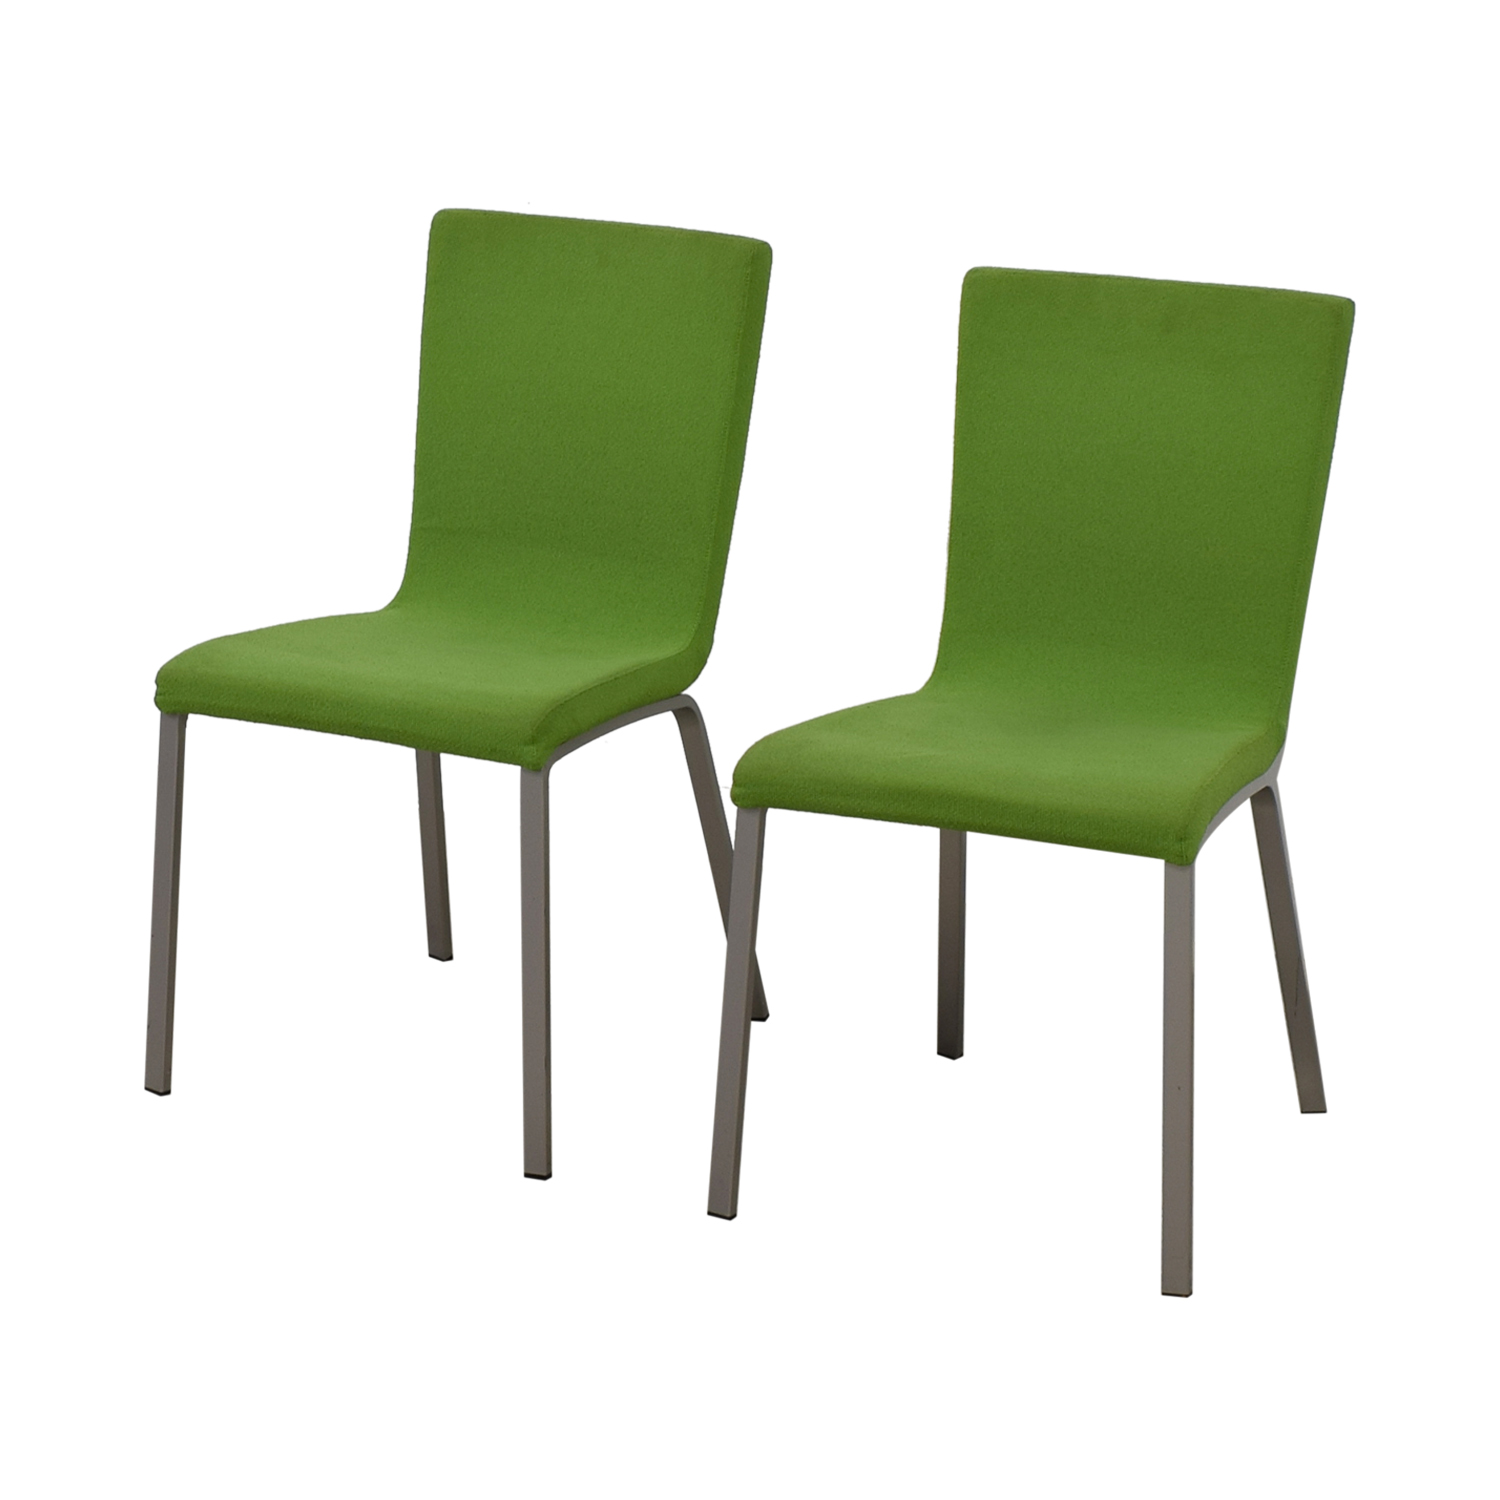 Calligaris Calligaris Green Club Chairs for sale